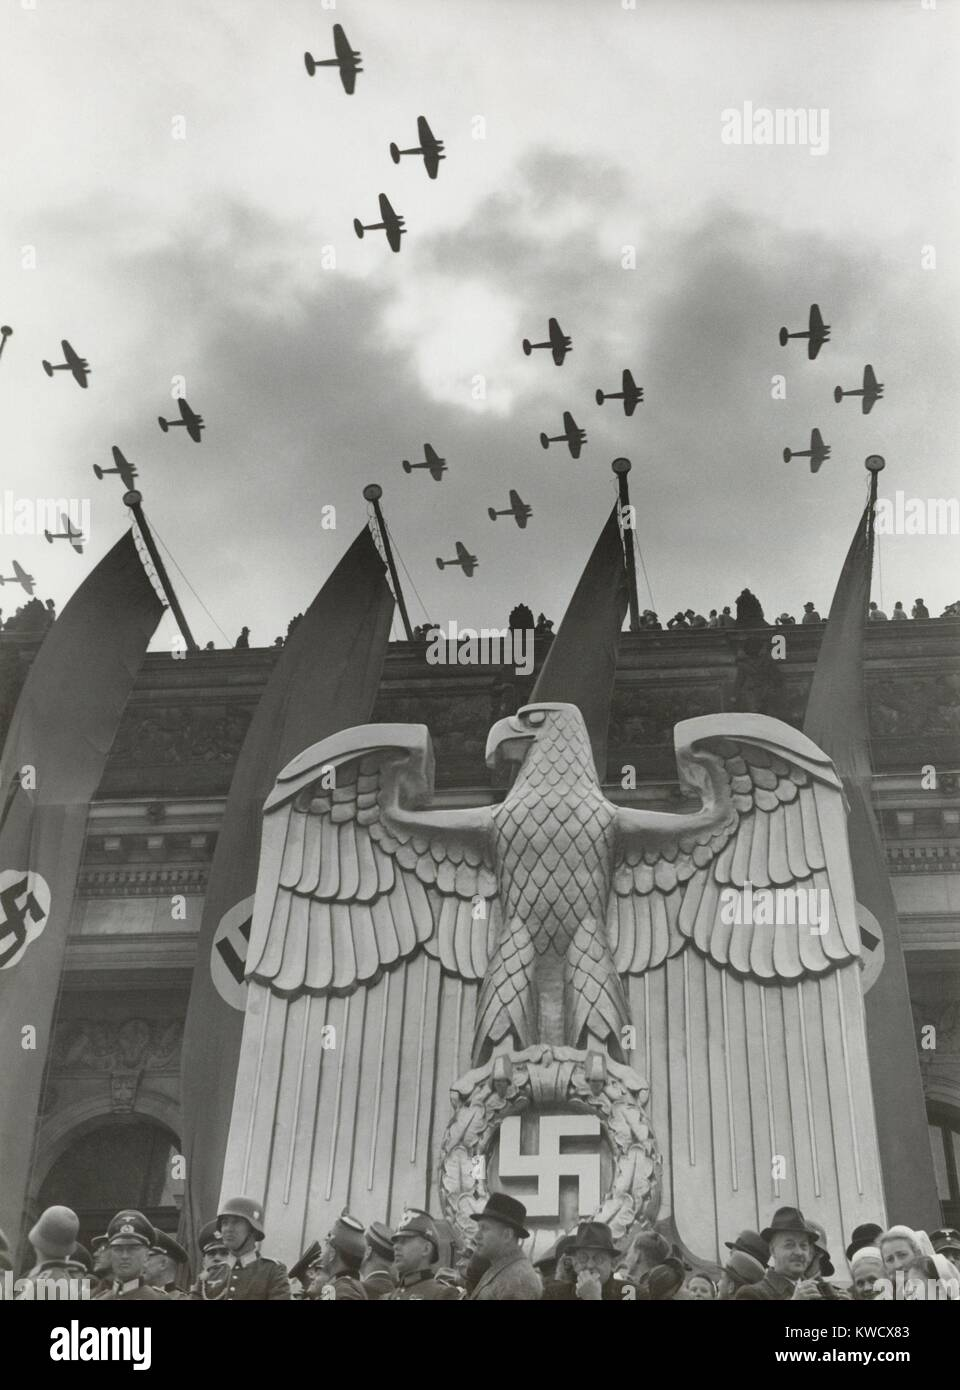 Luftwaffe Fly-By in honor of Hitlers birthday in Charlottenburg, Berlin, April 20, 1939. On the building is a sculpture Stock Photo